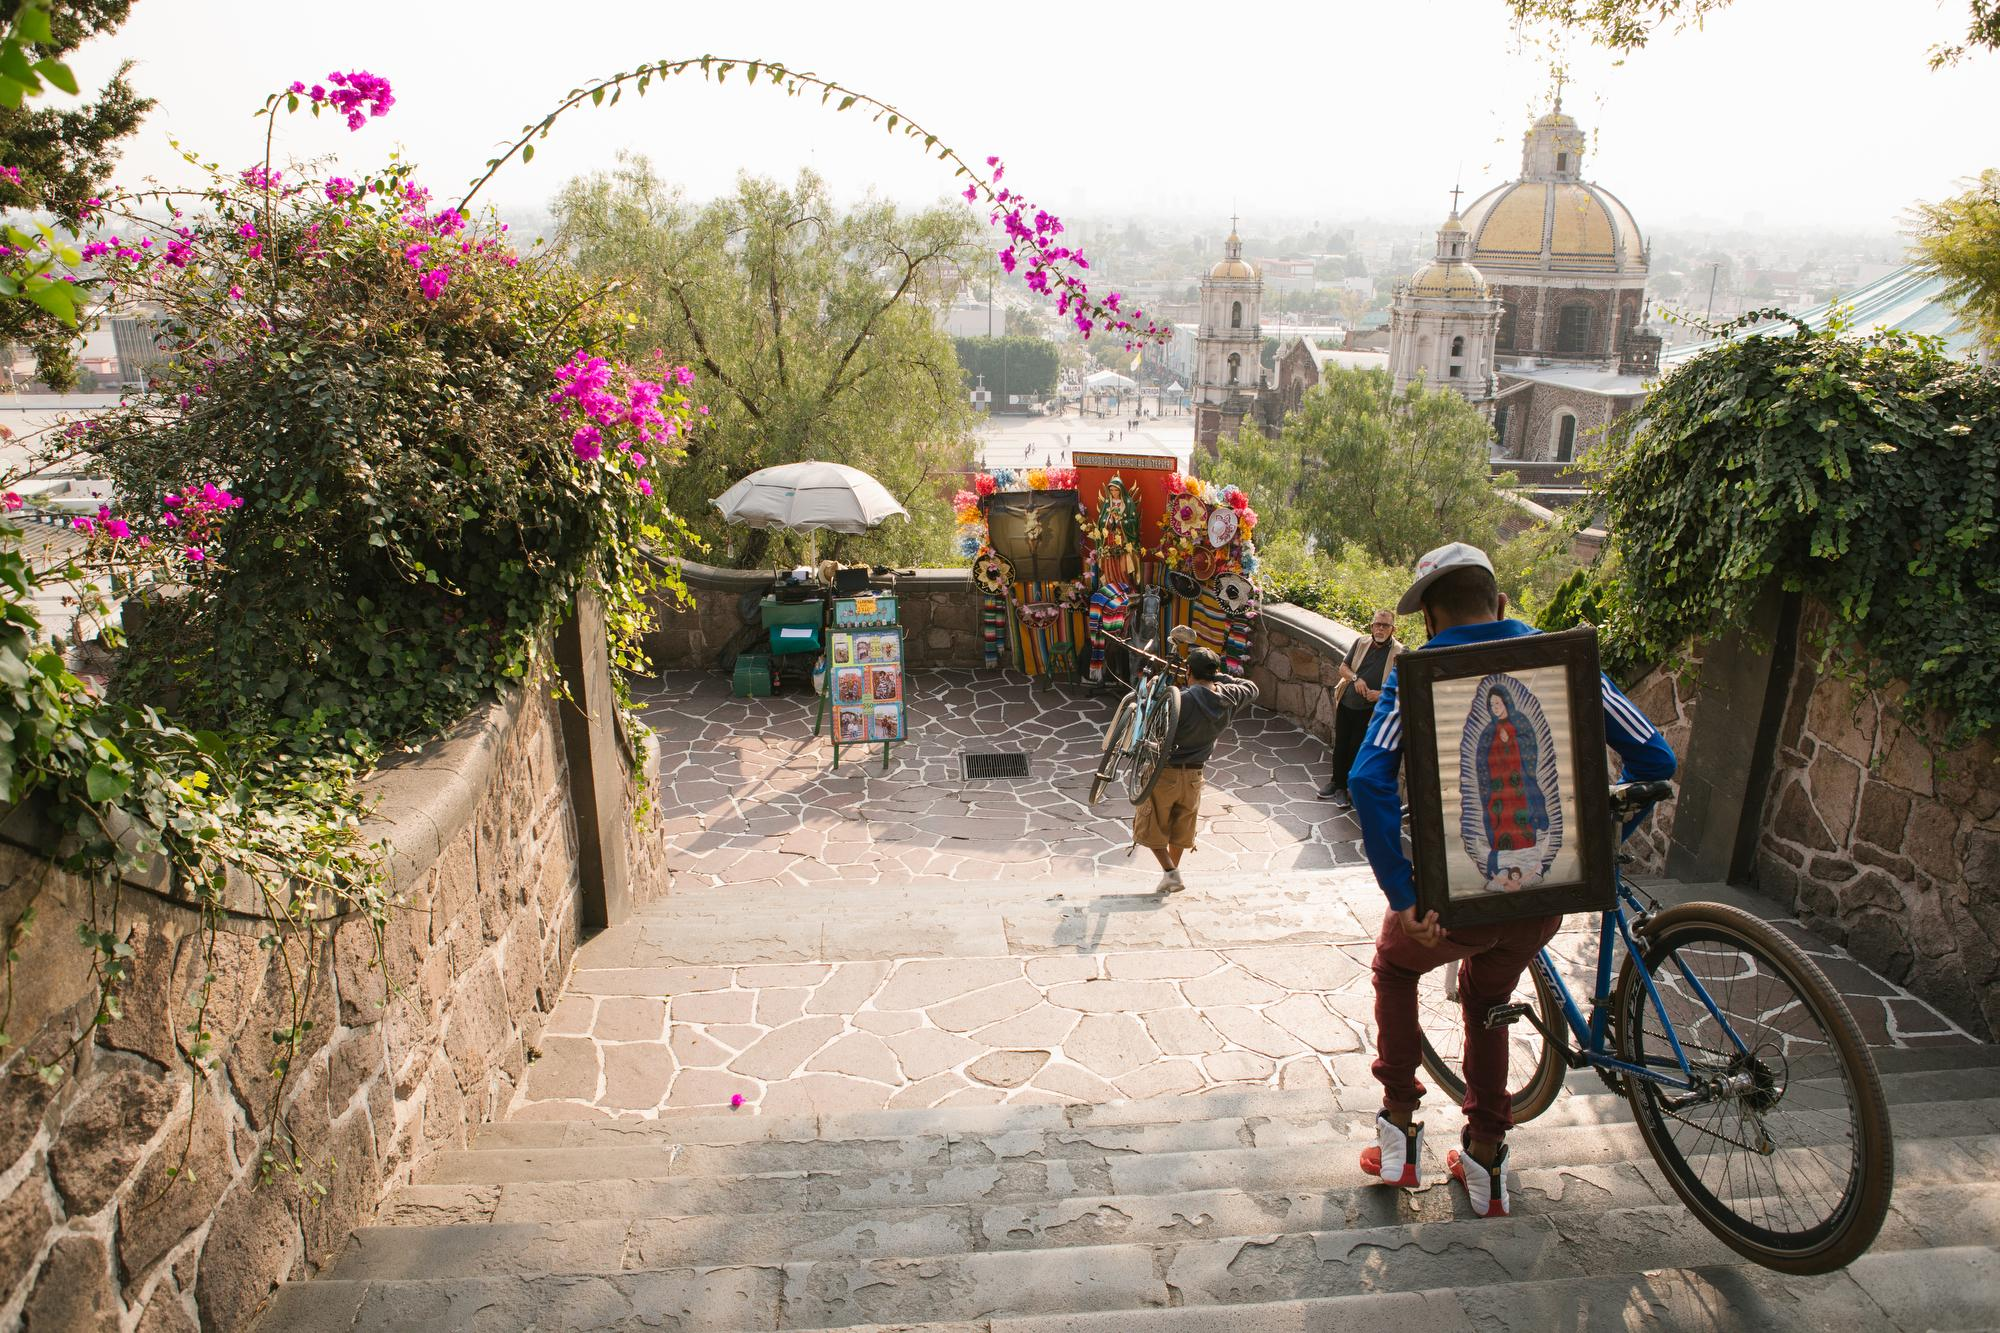 Cyclists carry their bicycles down the Hill of Tepeyac during a visit to the Basilica of Our Lady of Guadalupe in Mexico City, Mexico prior to its closure due to the COVID-19 pandemic.